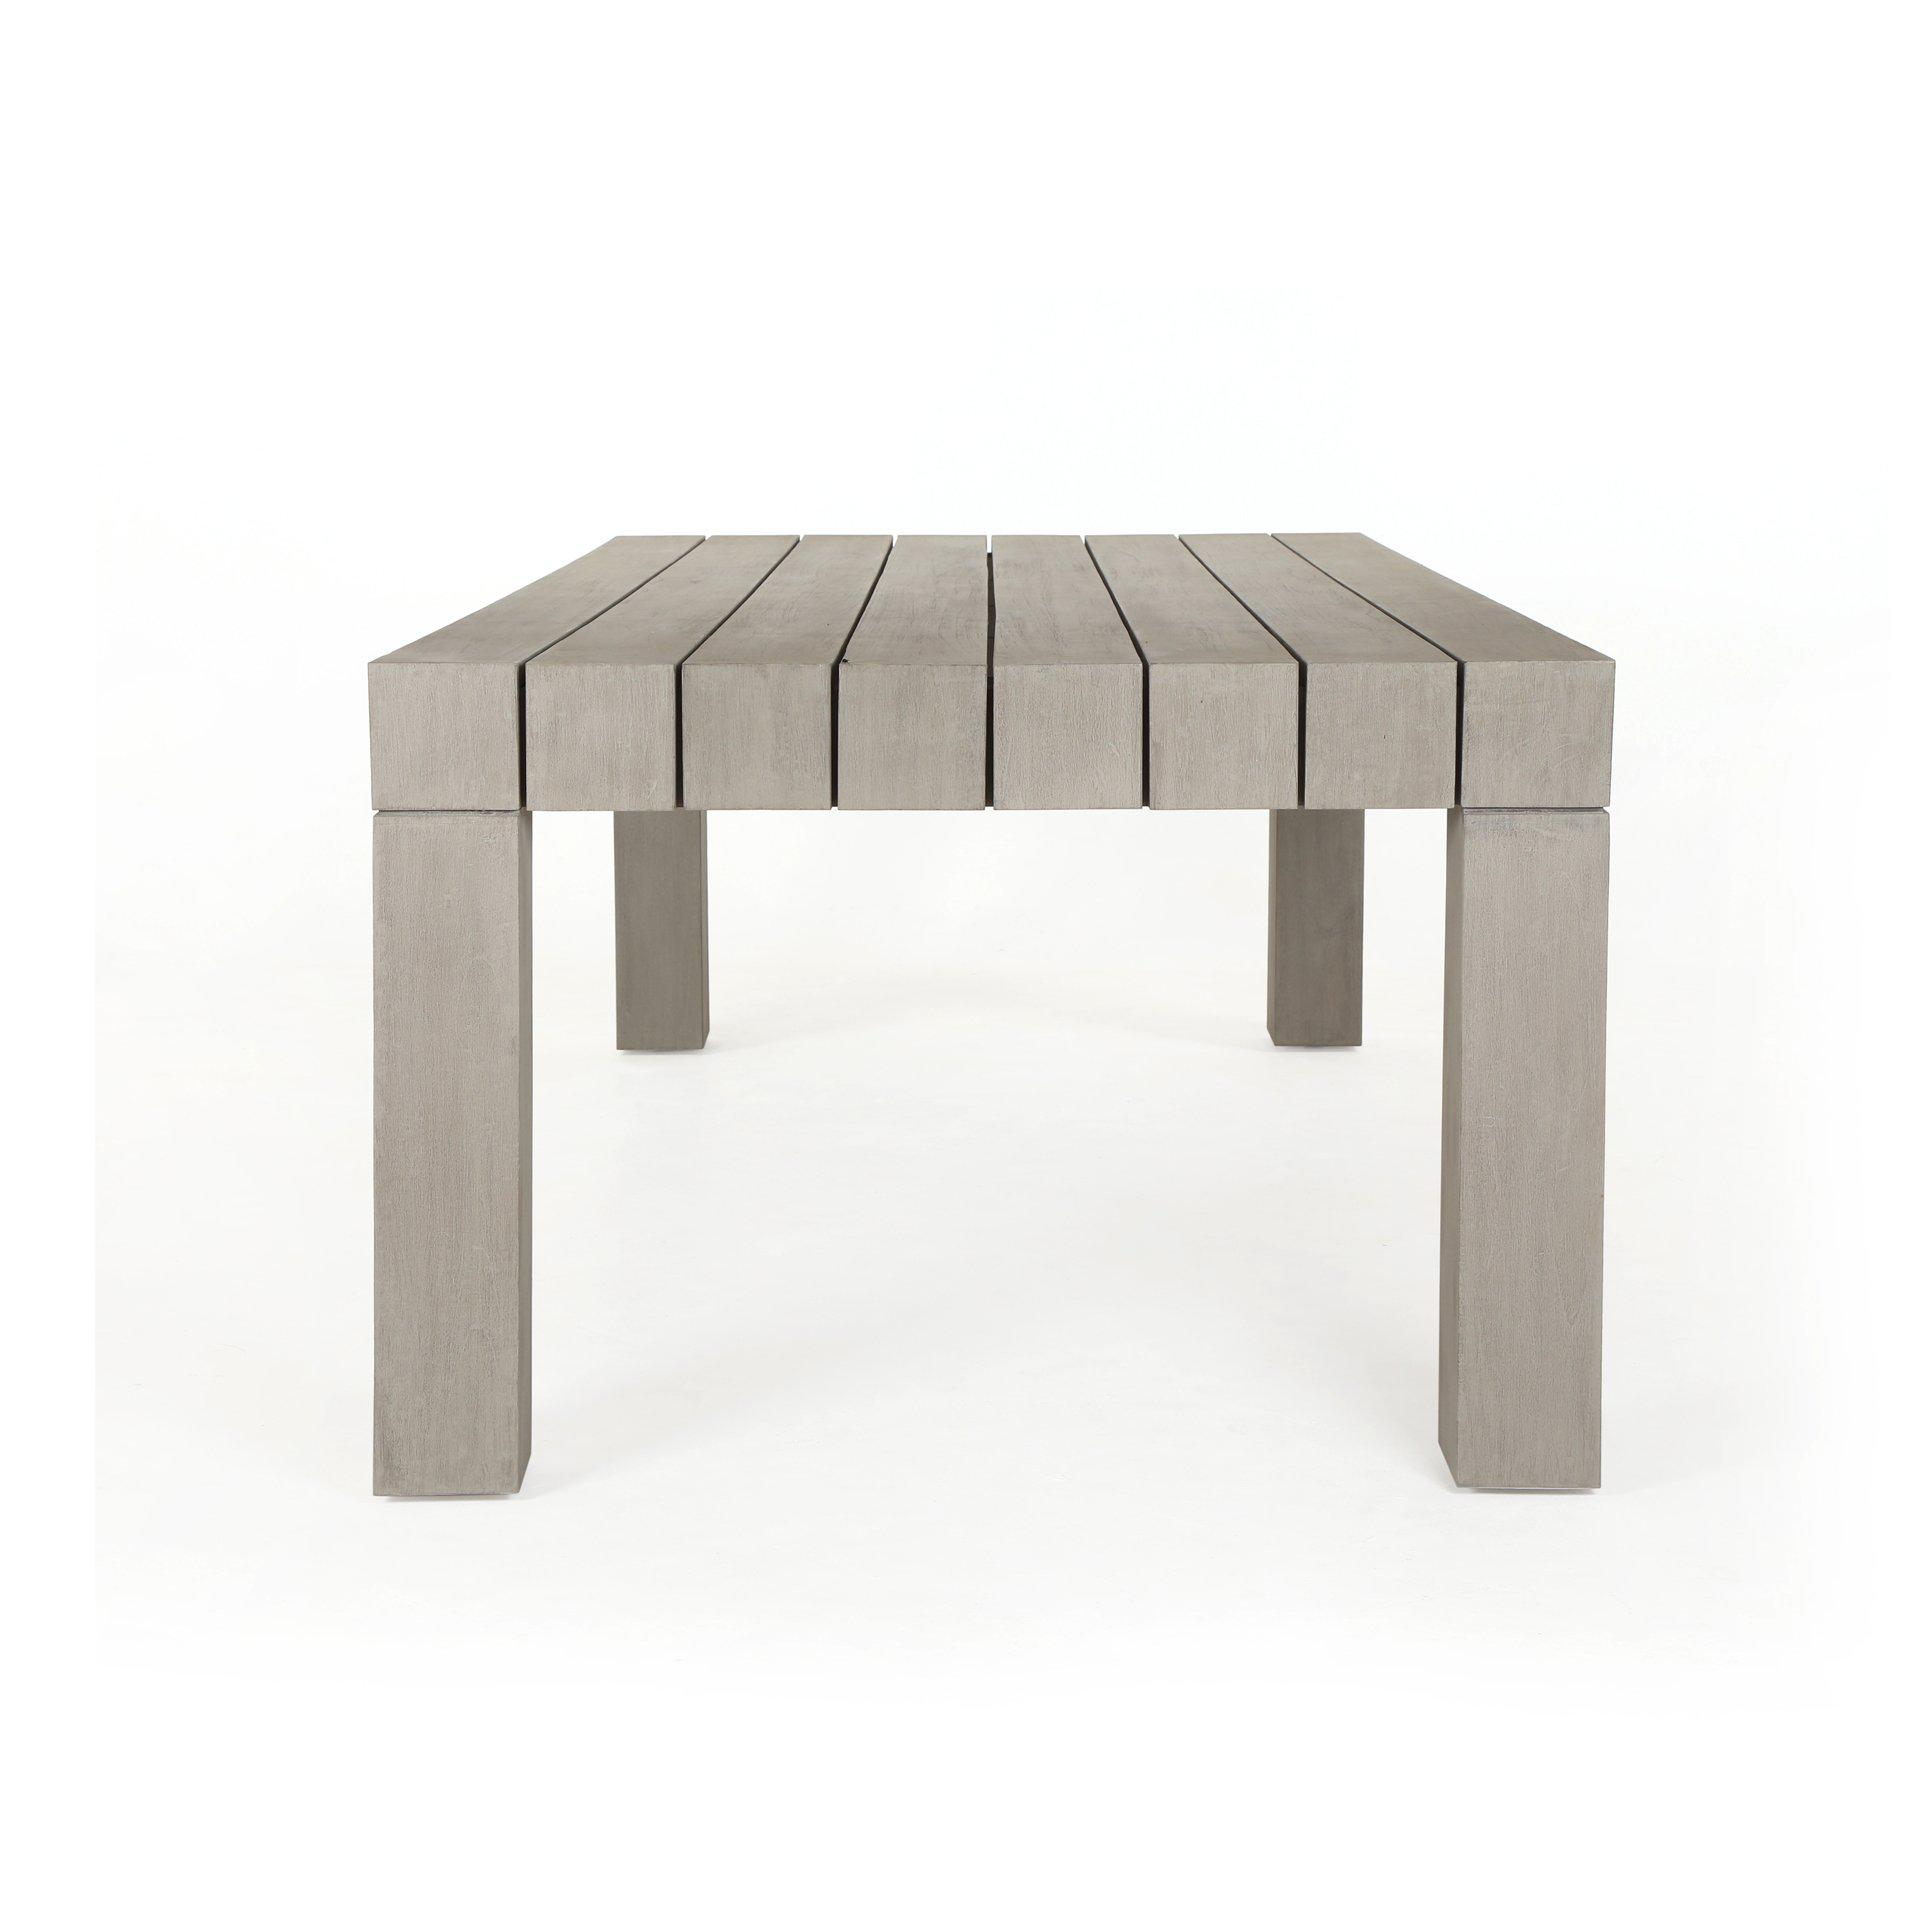 Sanur Indoor/Outdoor Dining Table